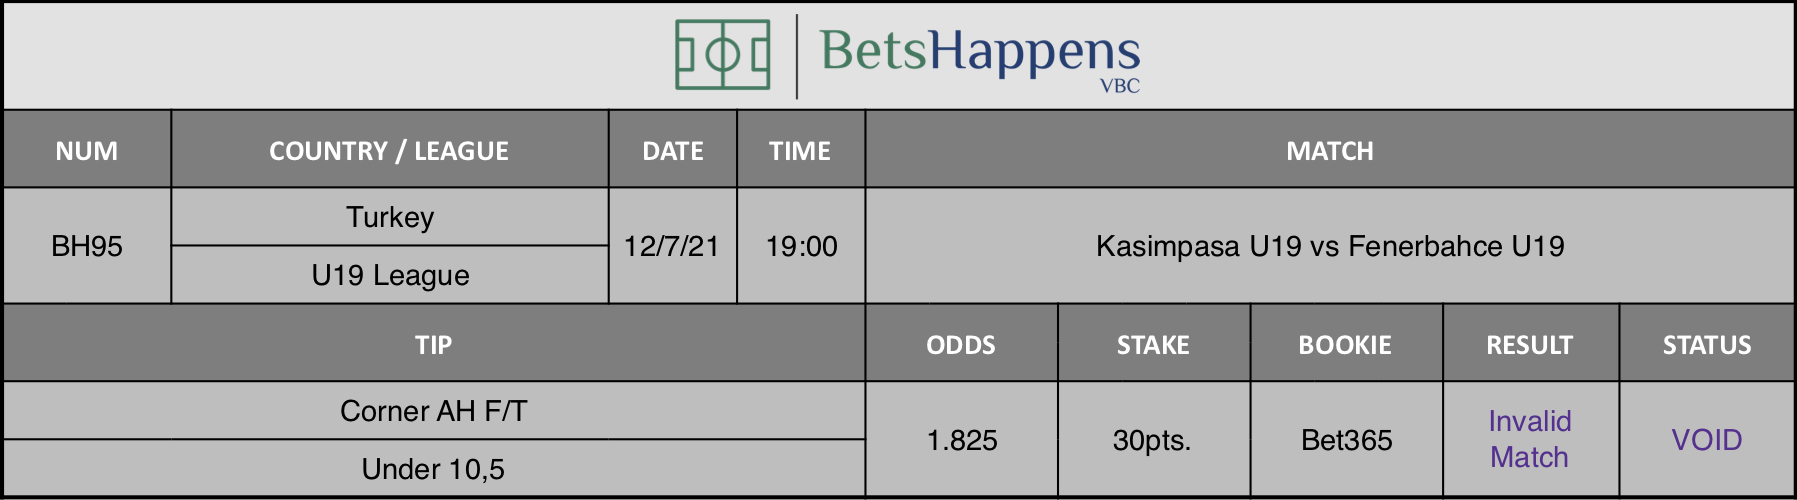 Results of our advice for the Kasimpasa U19 vs Fenerbahce U19 match in which Corner AH F/T Under 10,5 is recommended.